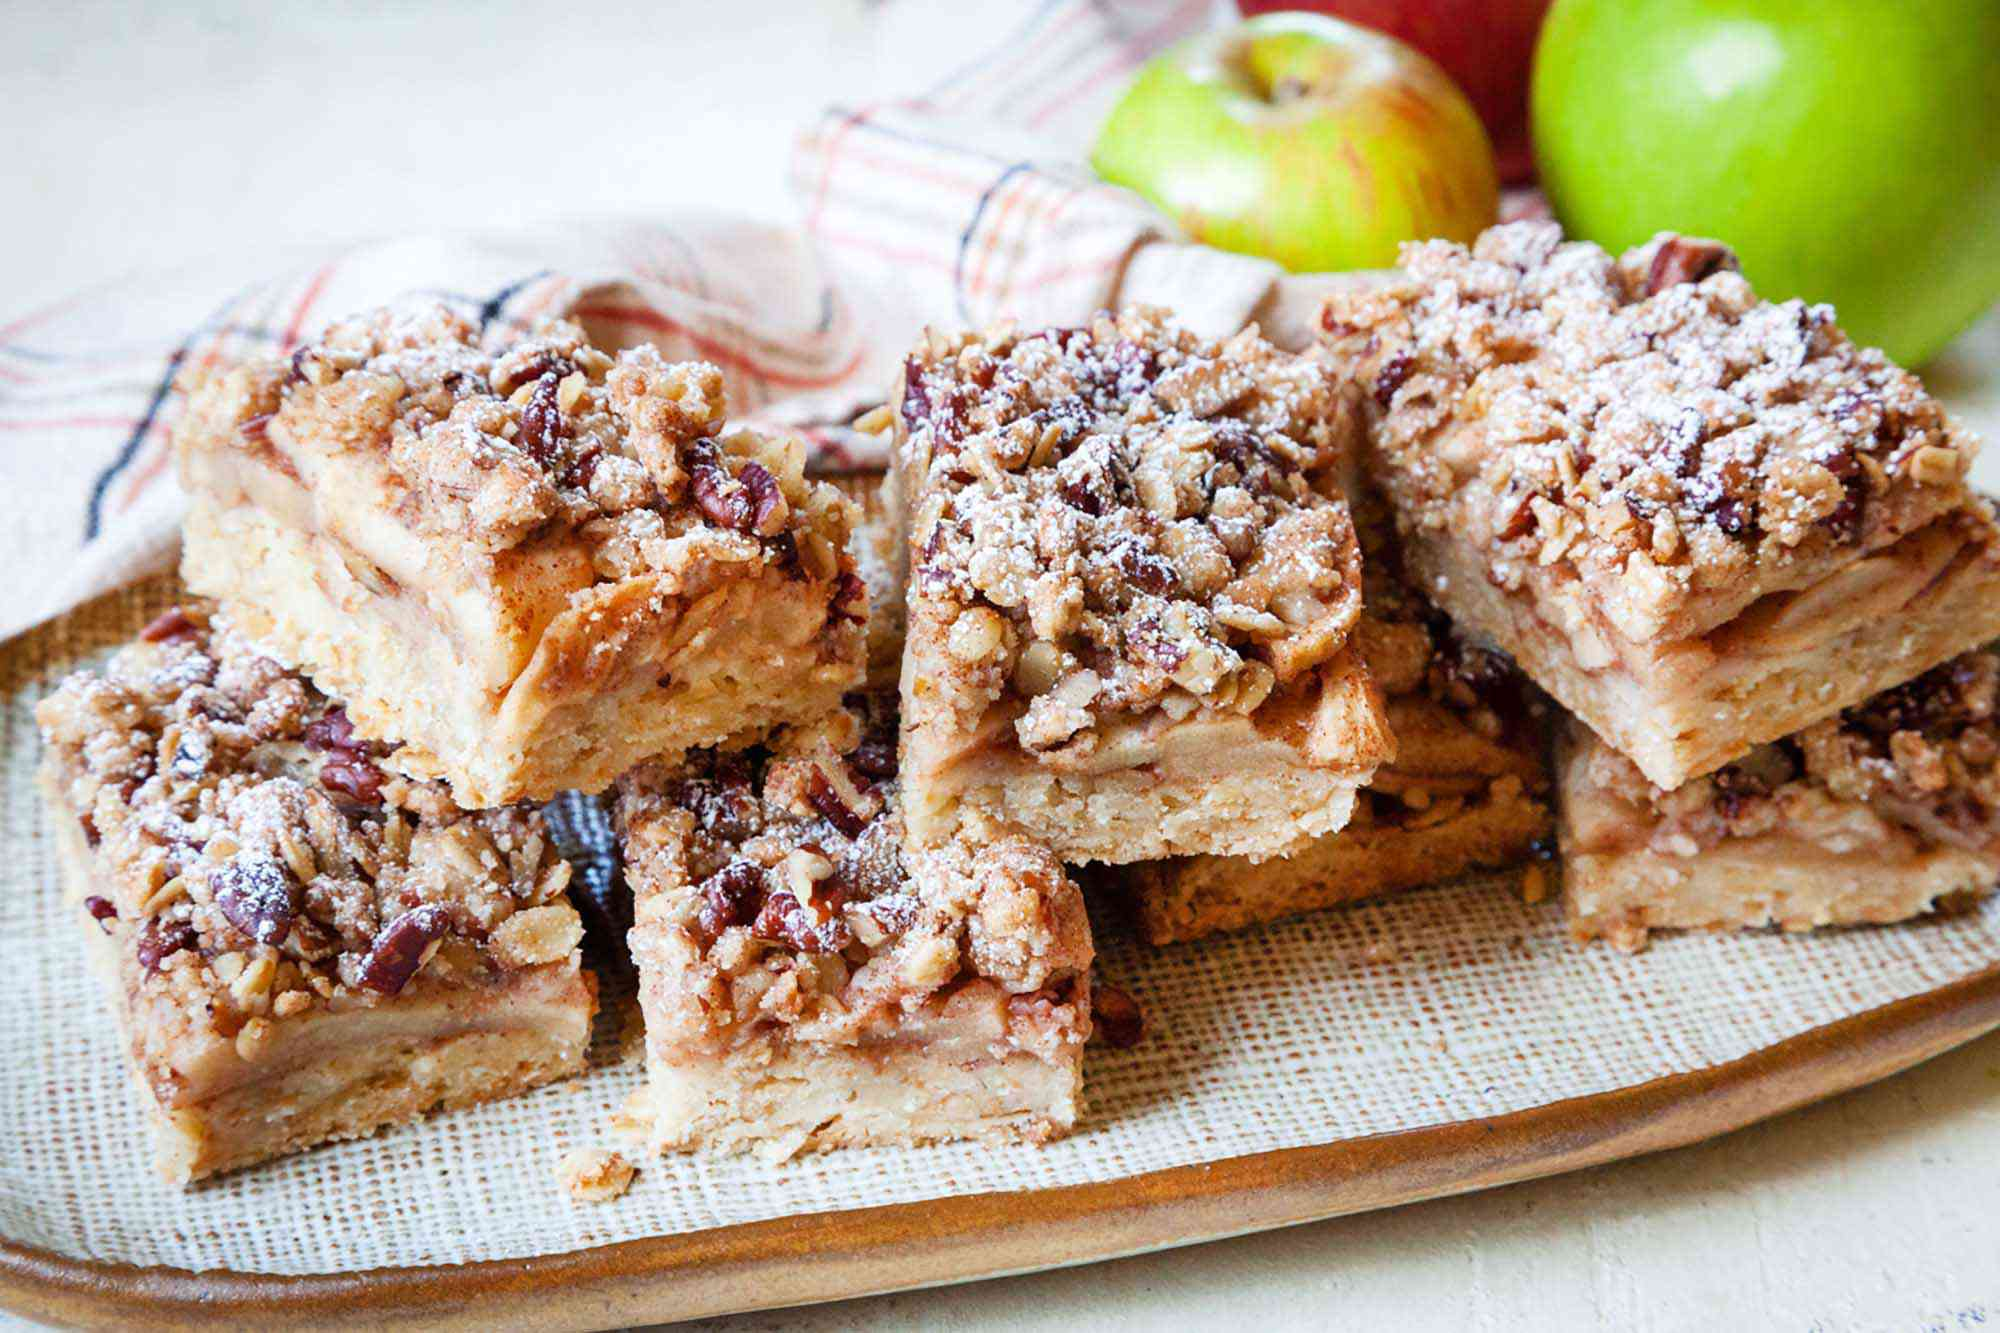 Apple pie bars with pecan oat crumb topping stacked on a platter with apples behind them.